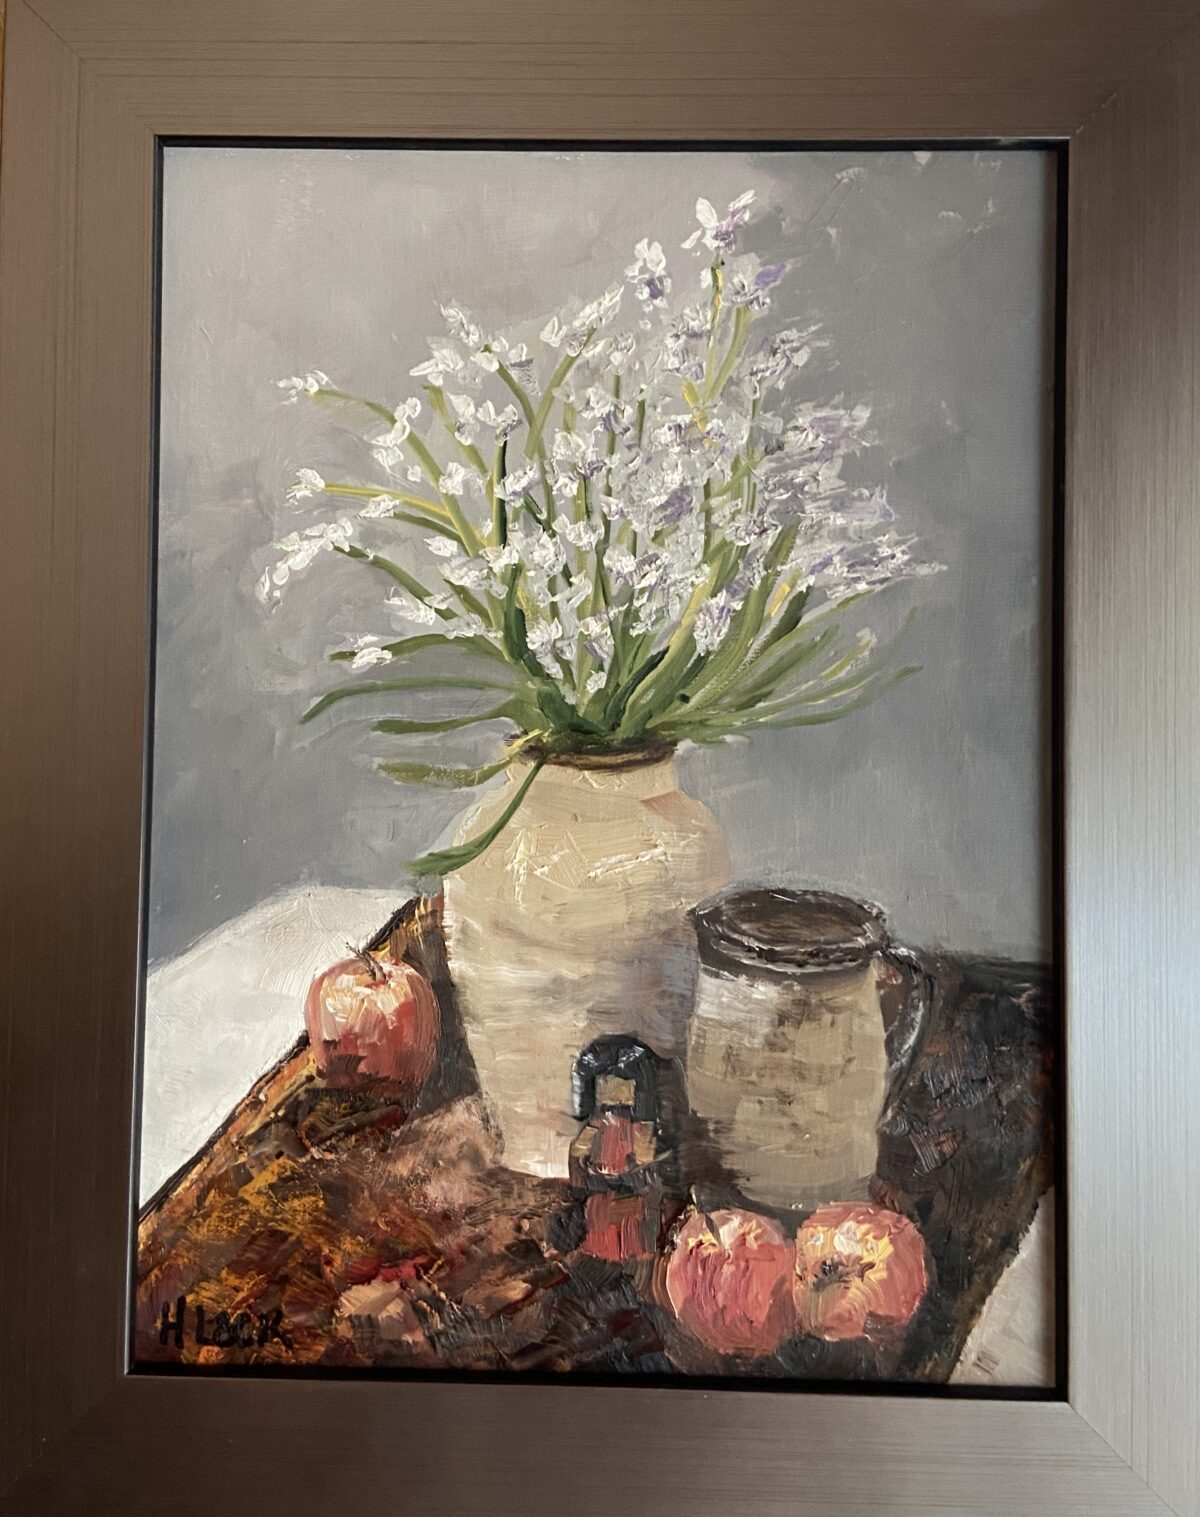 178 - Pottered Still Life - 9 x 12 - Still Life - $225